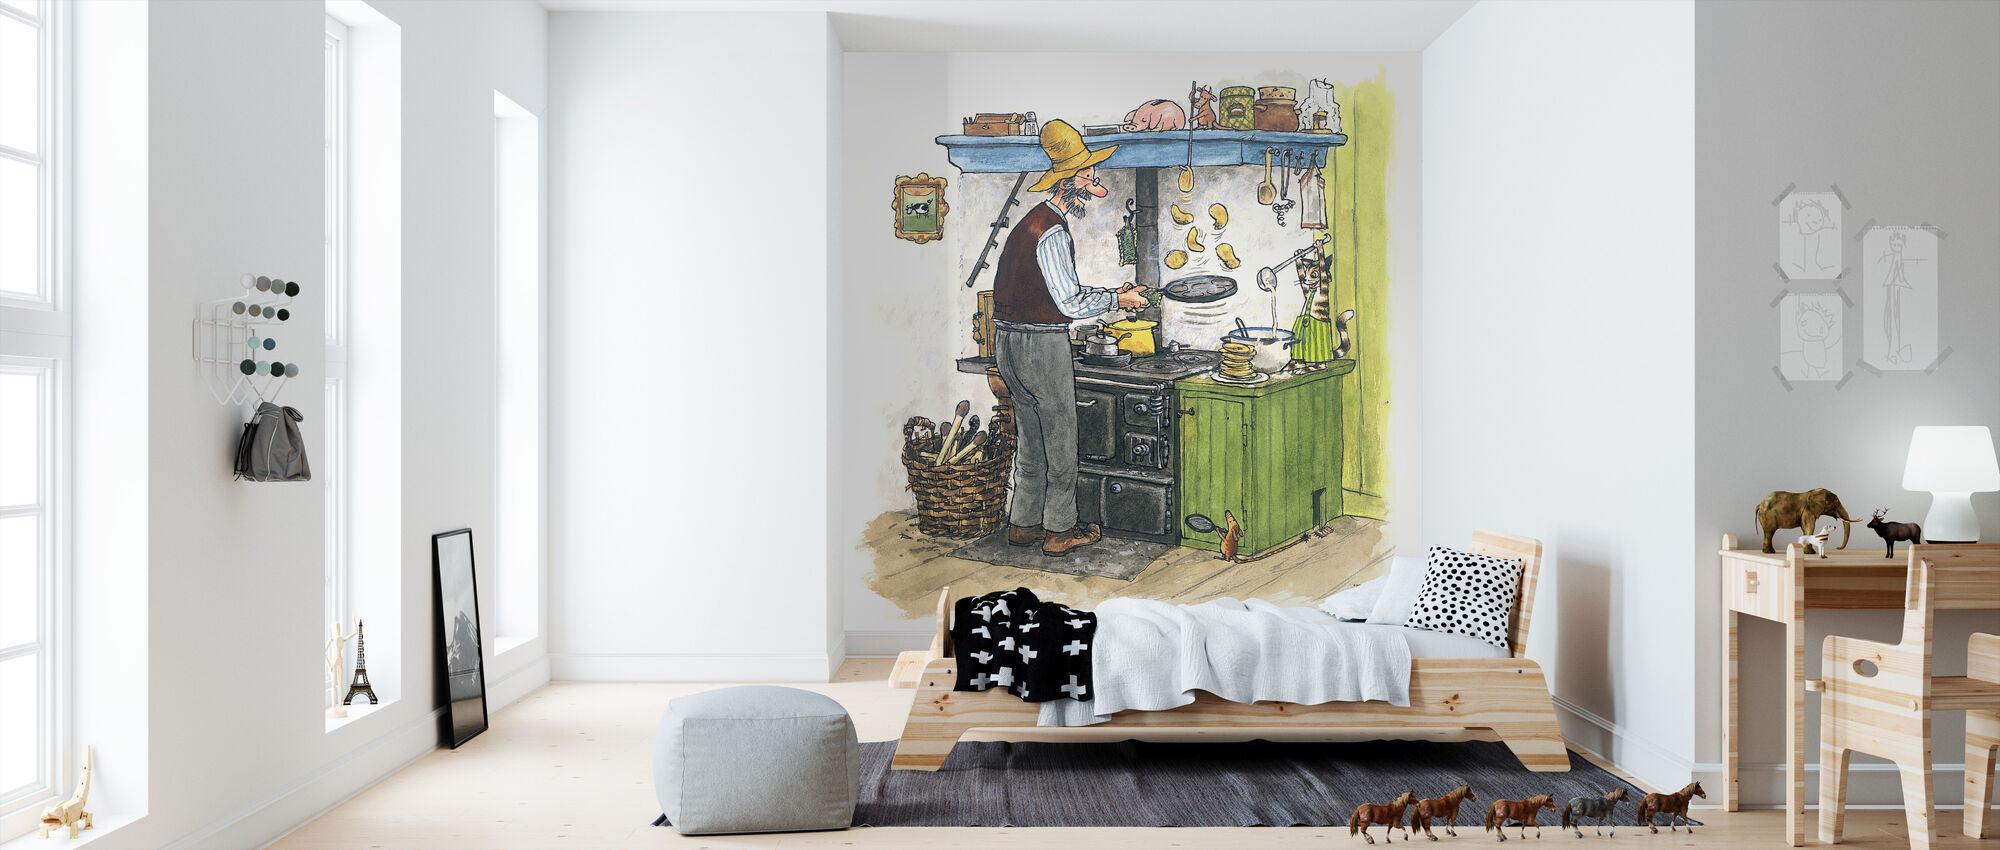 Findus moves out - Wallpaper - Kids Room